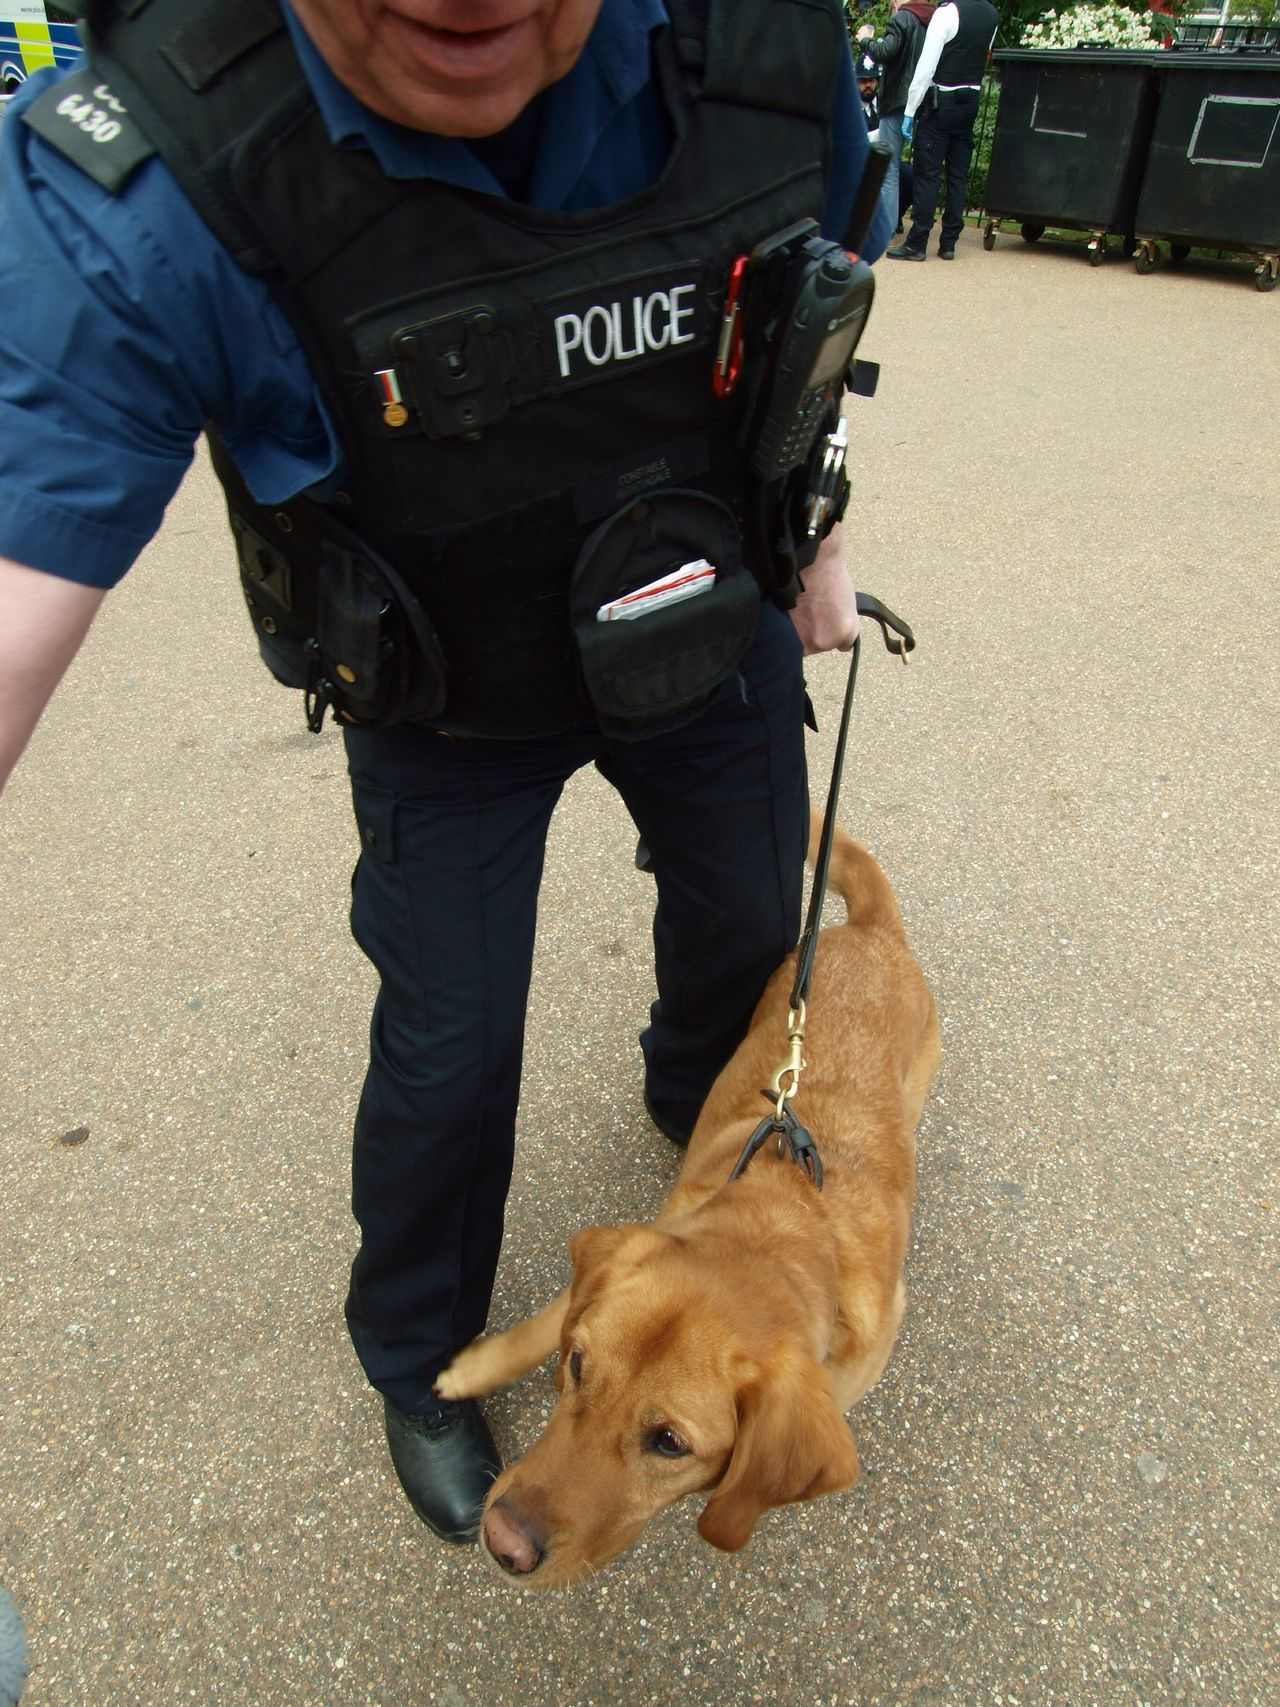 PC a Nightingale and Millie the drug sniffer dog conducting searches at the London 420 Rally to legalise Canabis 20-04-2017 Hyde Park Dog Canabis Metropolitan Police 420 Rally Drug Sniffer Dogs London News Steve Merrick Stevesevilempire Canabisculture London Lifestyle London Canabbis Olympus Zuiko Policing